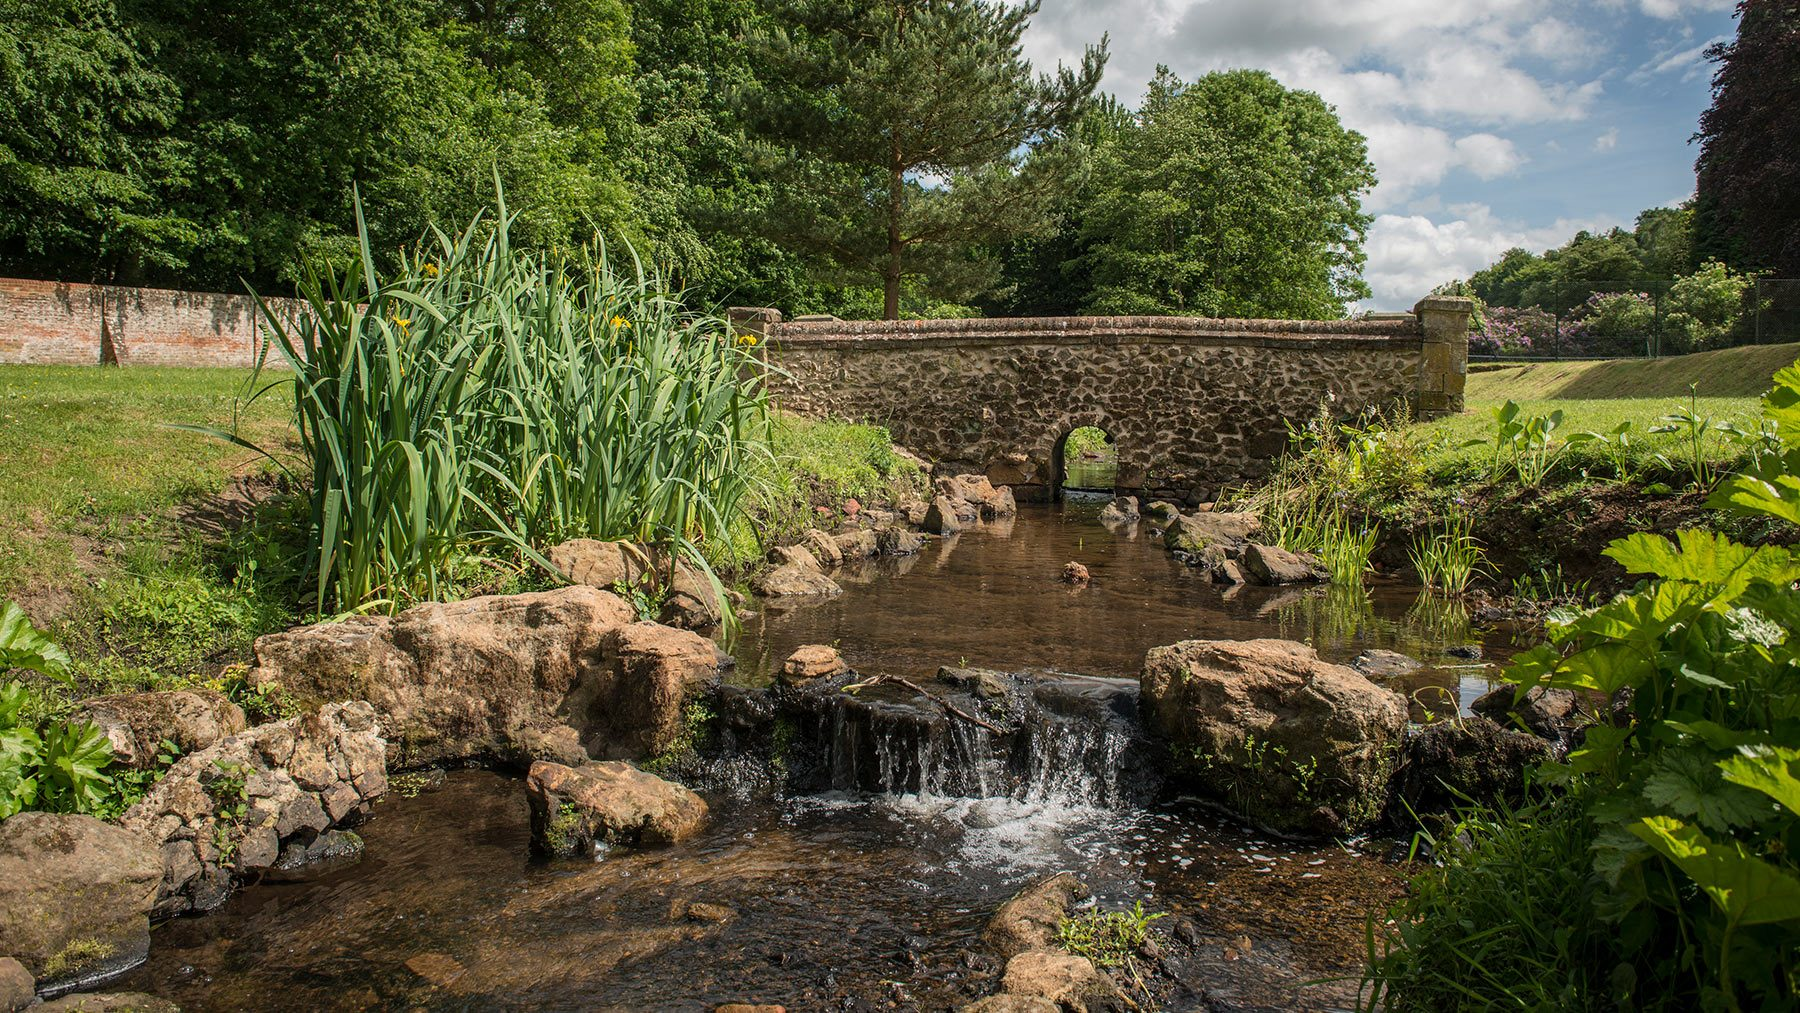 The River Tillingbourne flows through the Italian Gardens